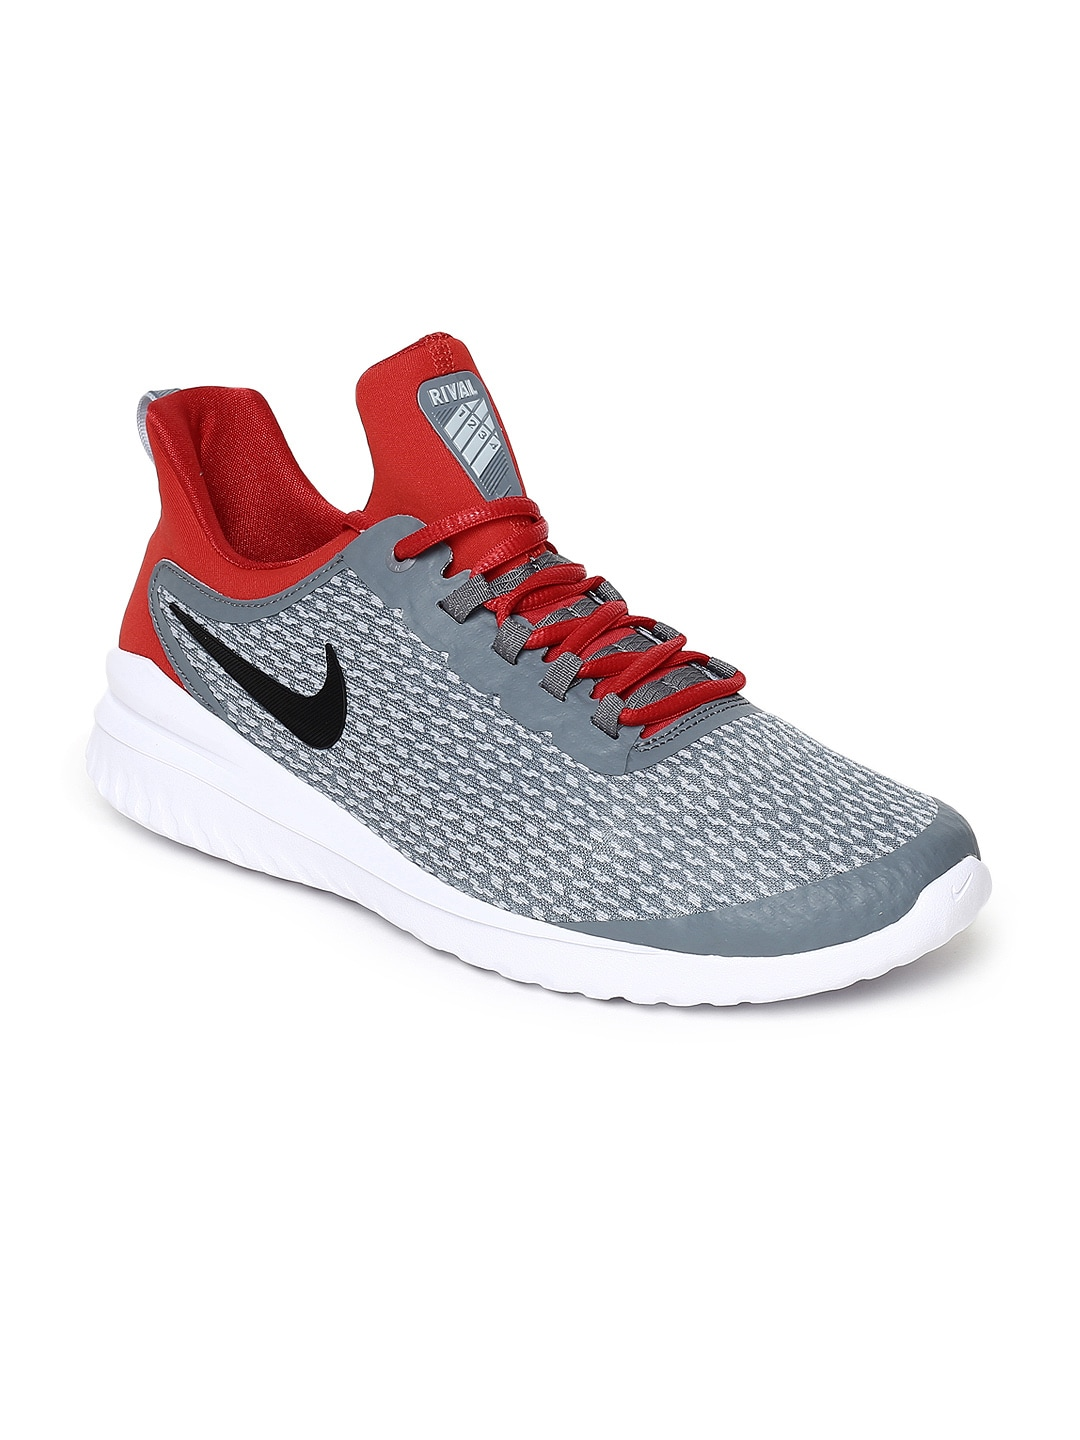 new concept 7209b 0e609 Nike Sandals Sweatshirts Sports Shoes - Buy Nike Sandals Sweatshirts Sports  Shoes online in India